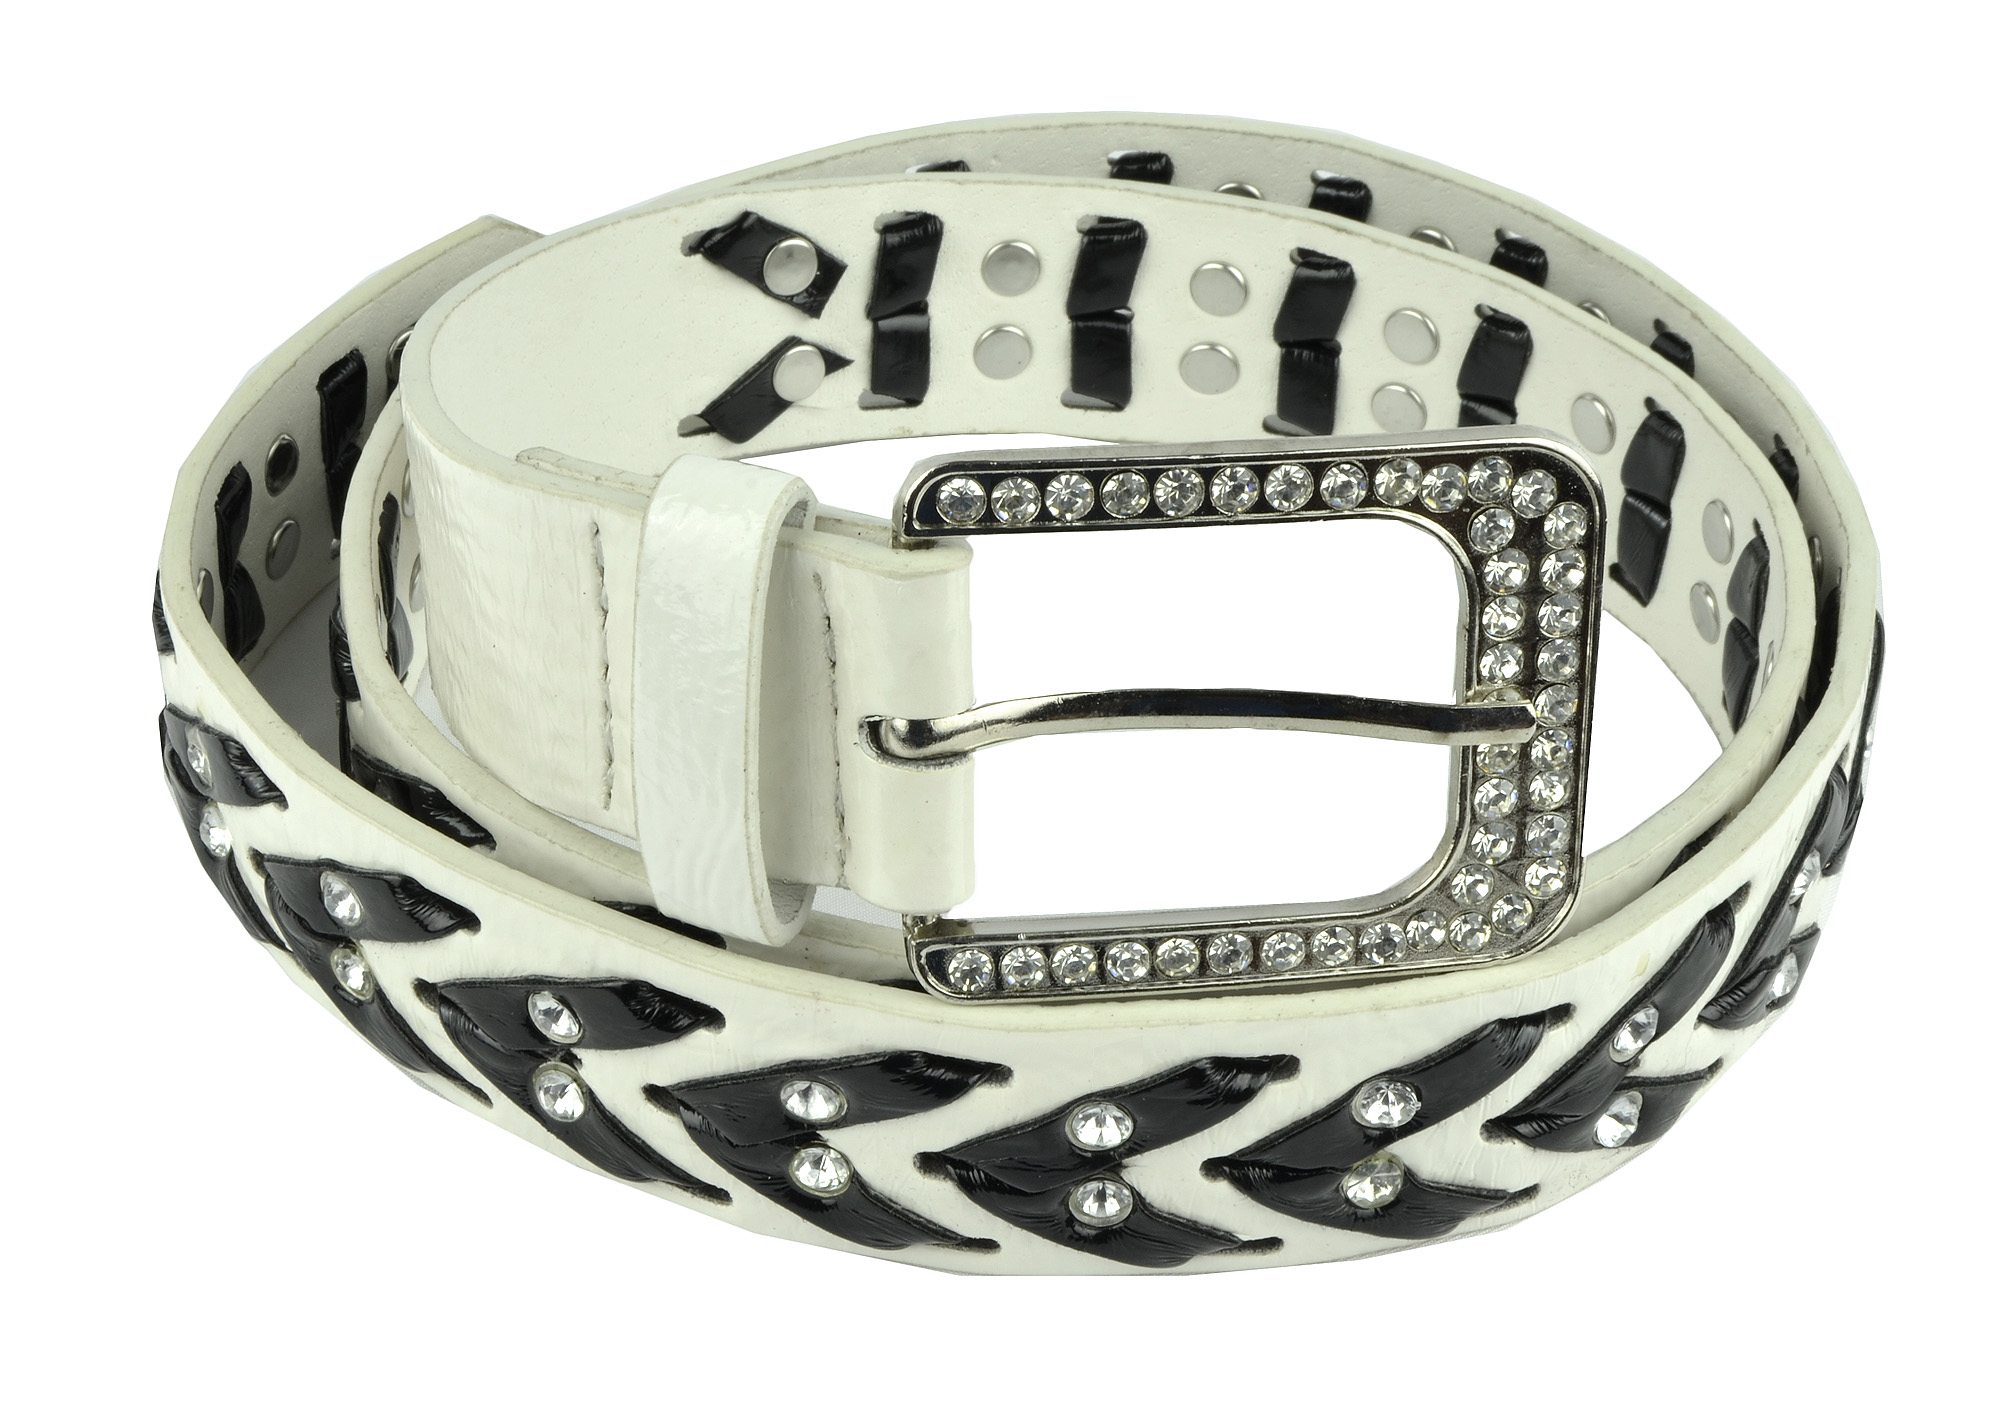 Womens Rhinestone Belts - Western Cowgirl Belt with Bling Buckles by Belle Donne - White